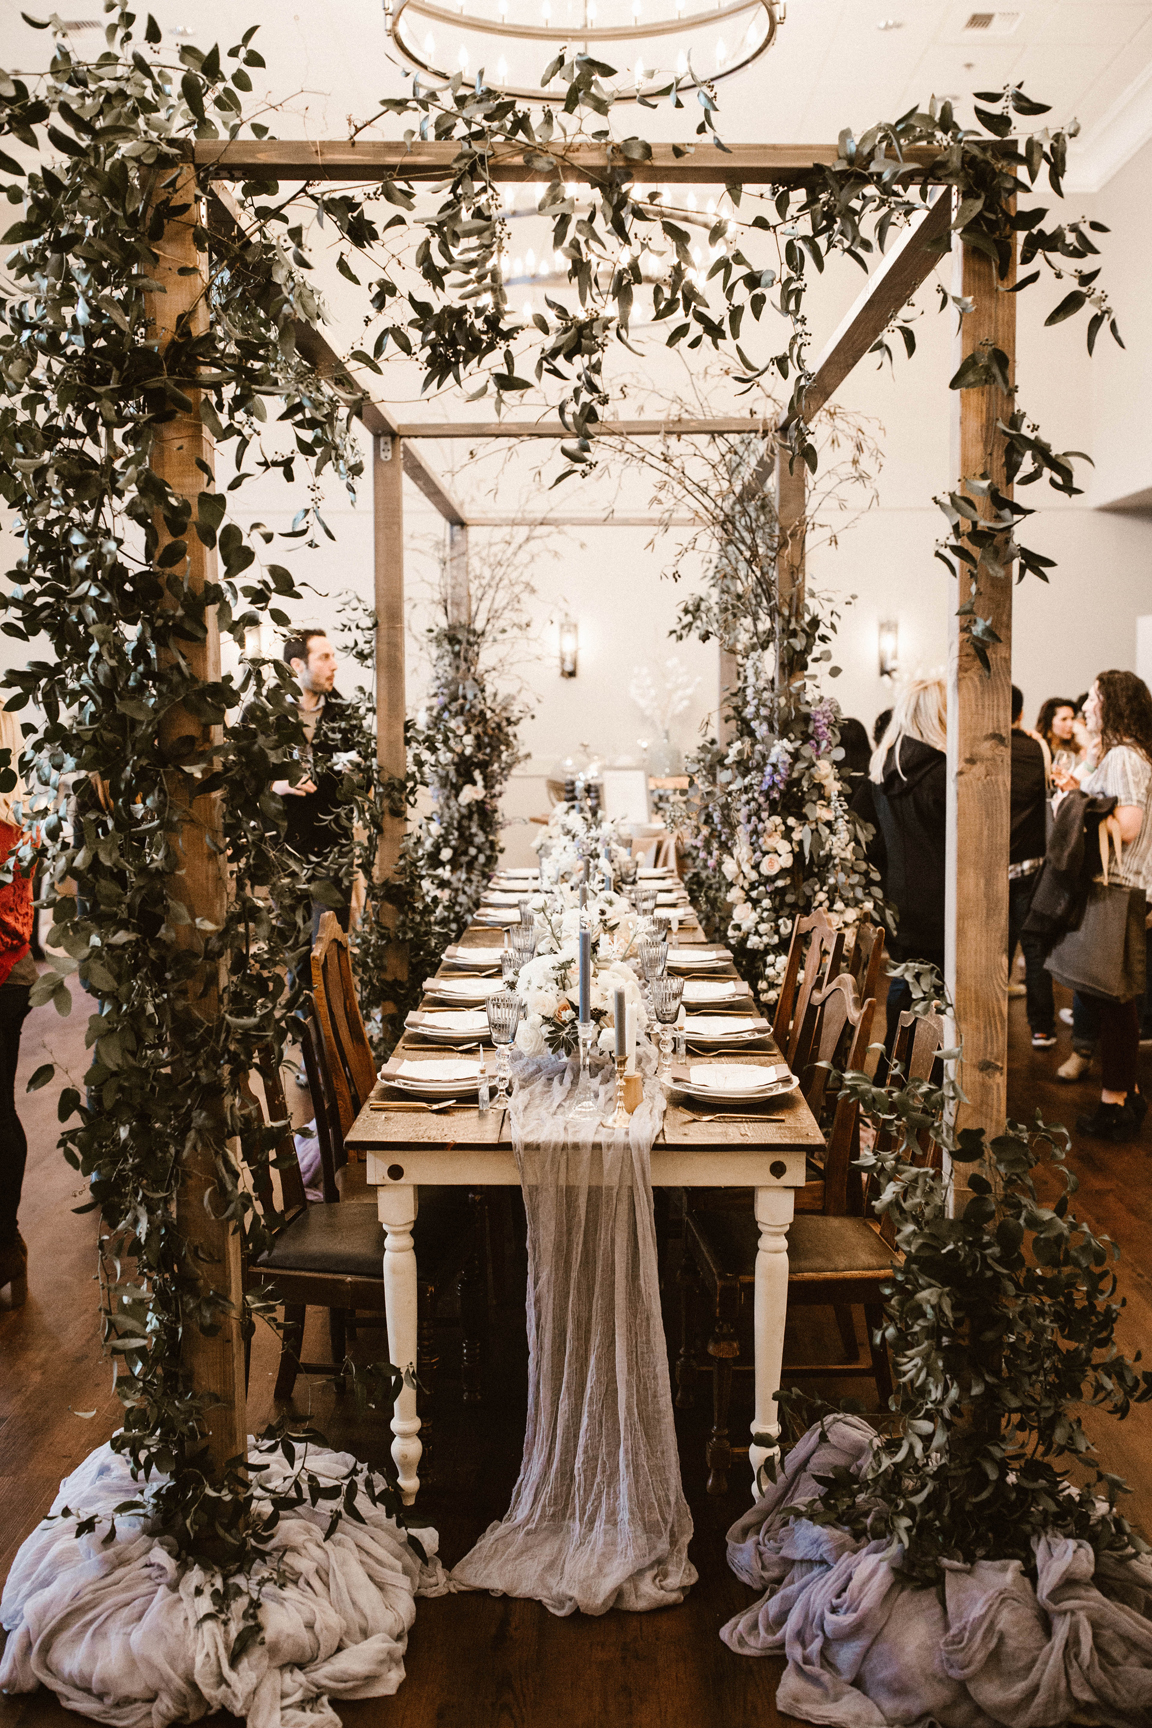 Columbia+Winery_Woodinville_2017_Weddings+In+Woodinville234.jpg